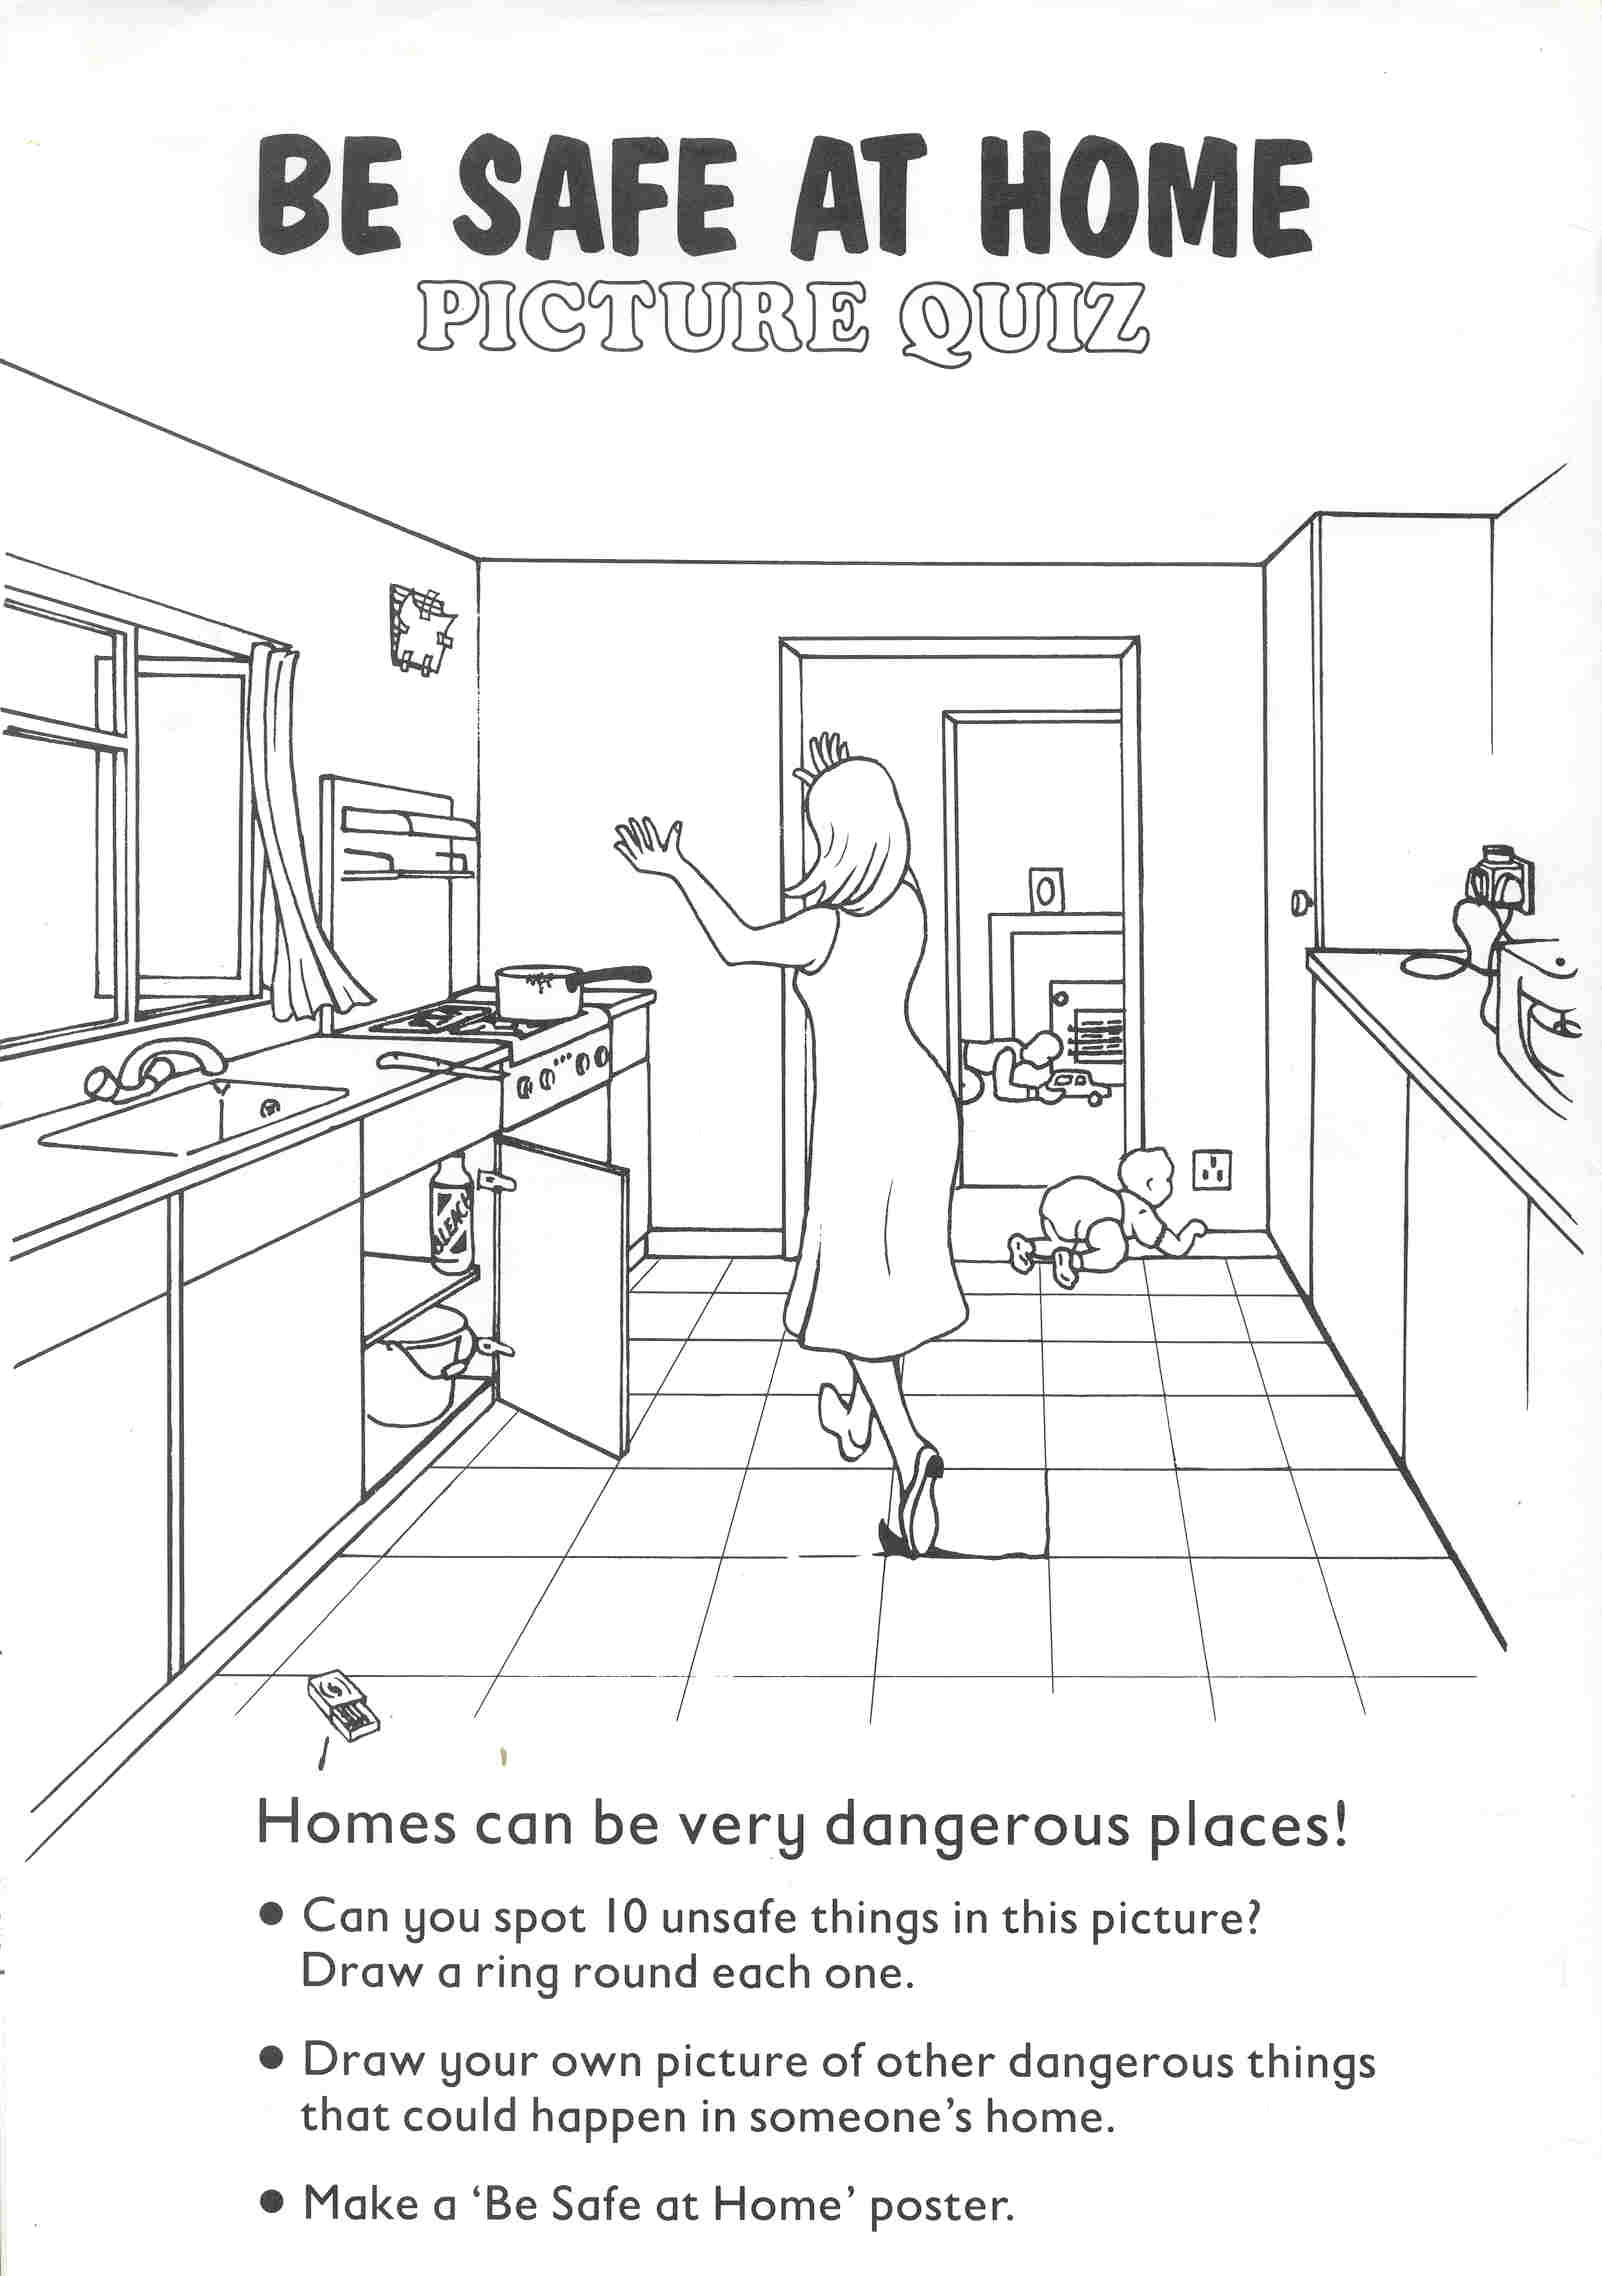 worksheet Fire Safety Worksheet home safety worksheets free library download and hazards in the worksheet templates worksheets